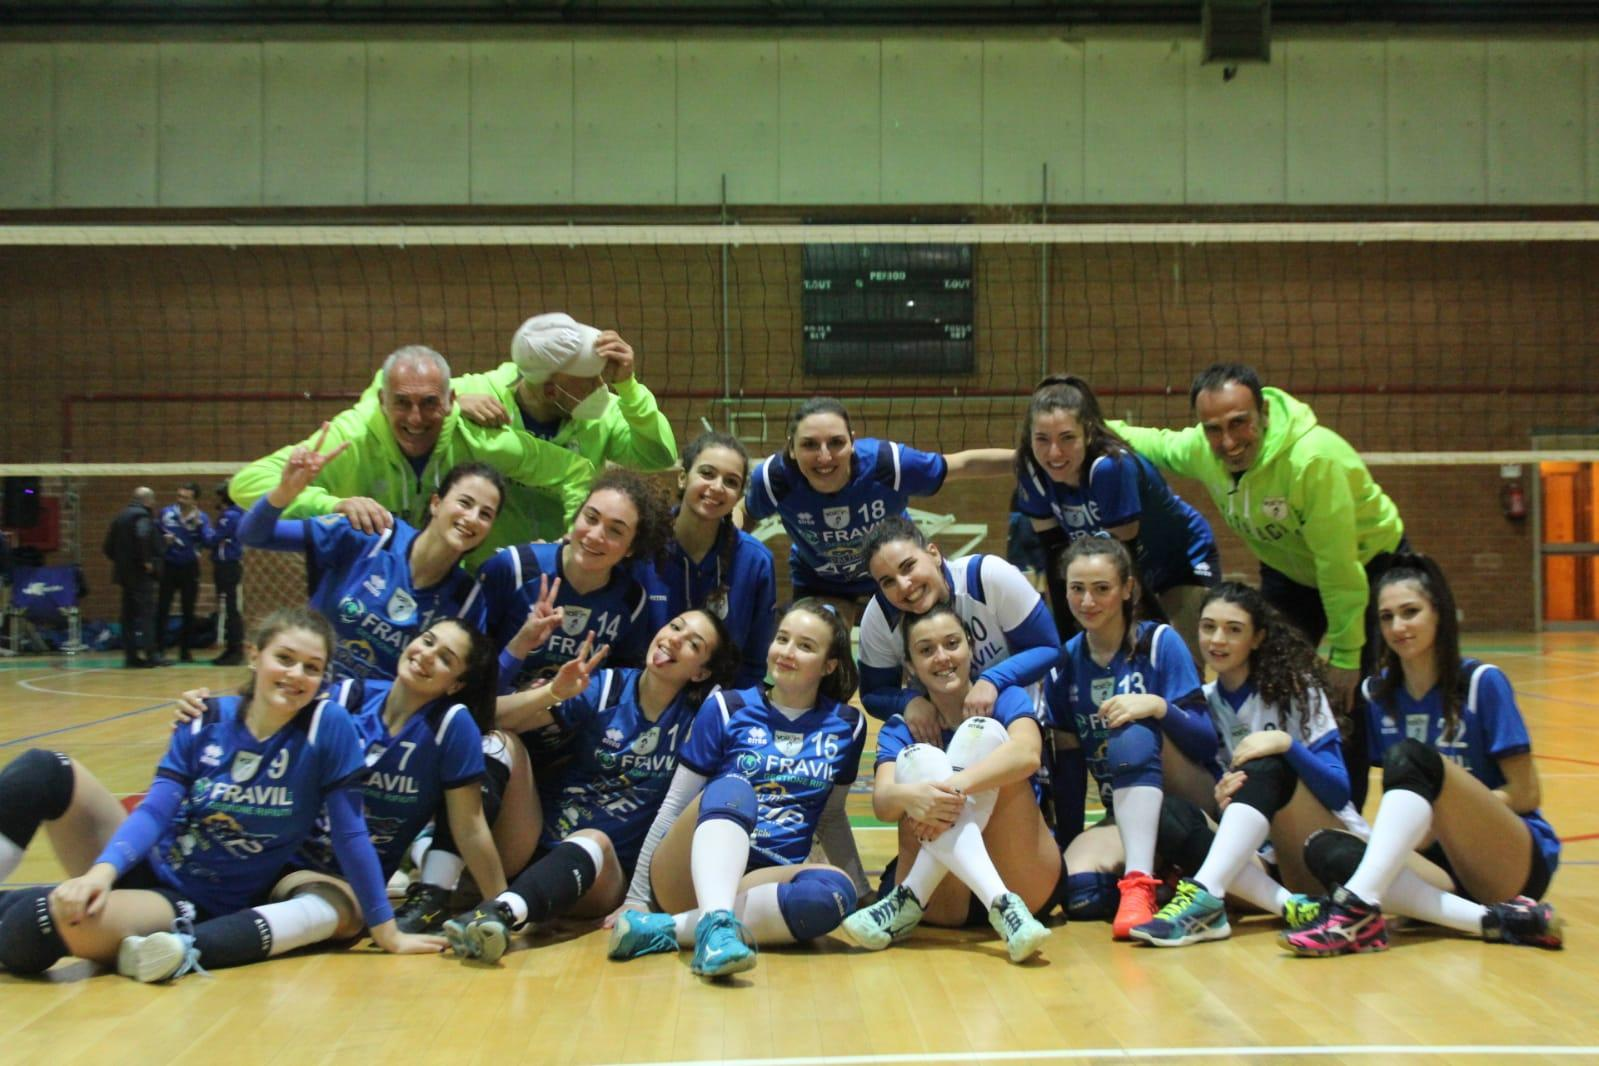 serie-c-volley-terracina-trionfo-al-tie-break-nel-derby-con-la-futura